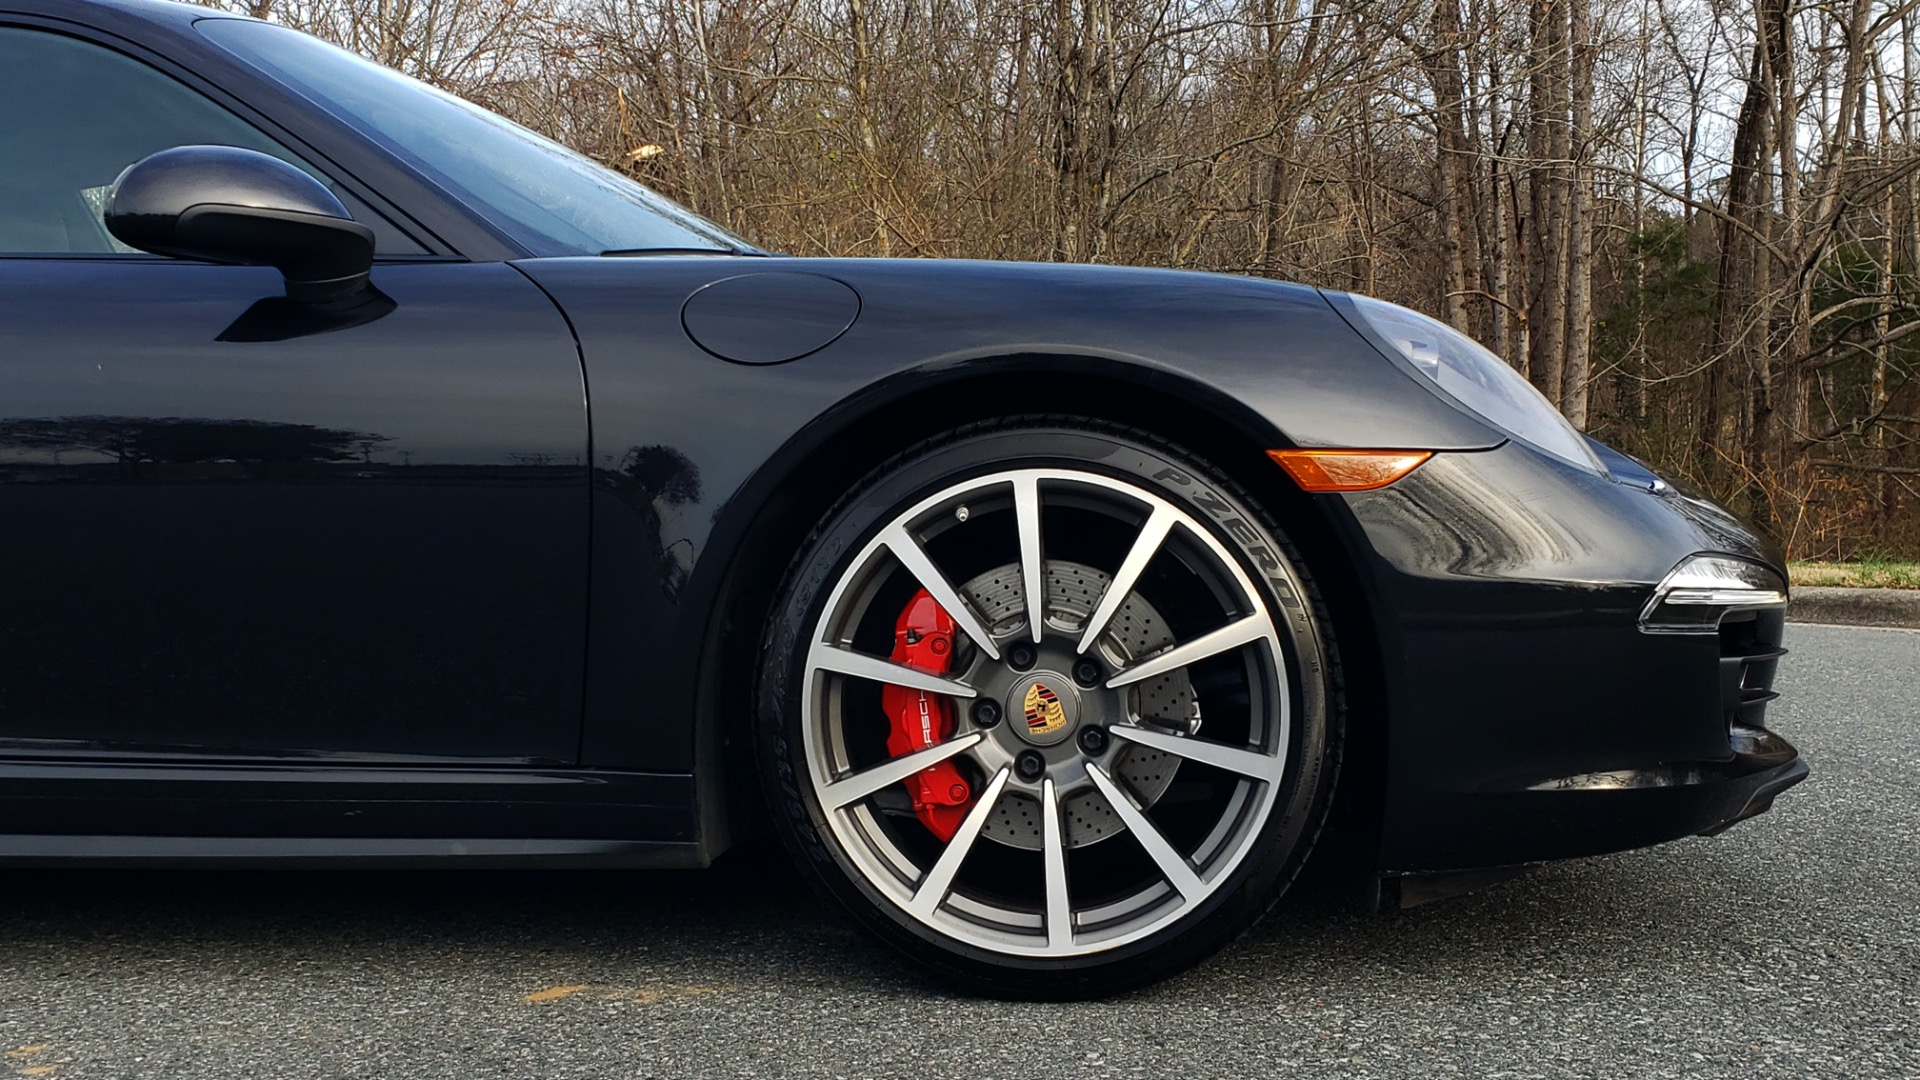 Used 2014 Porsche 911 CARRERA 4S / PREM PKG PLUS / NAV / SUNROO / BOSE / CHRONO for sale Sold at Formula Imports in Charlotte NC 28227 73